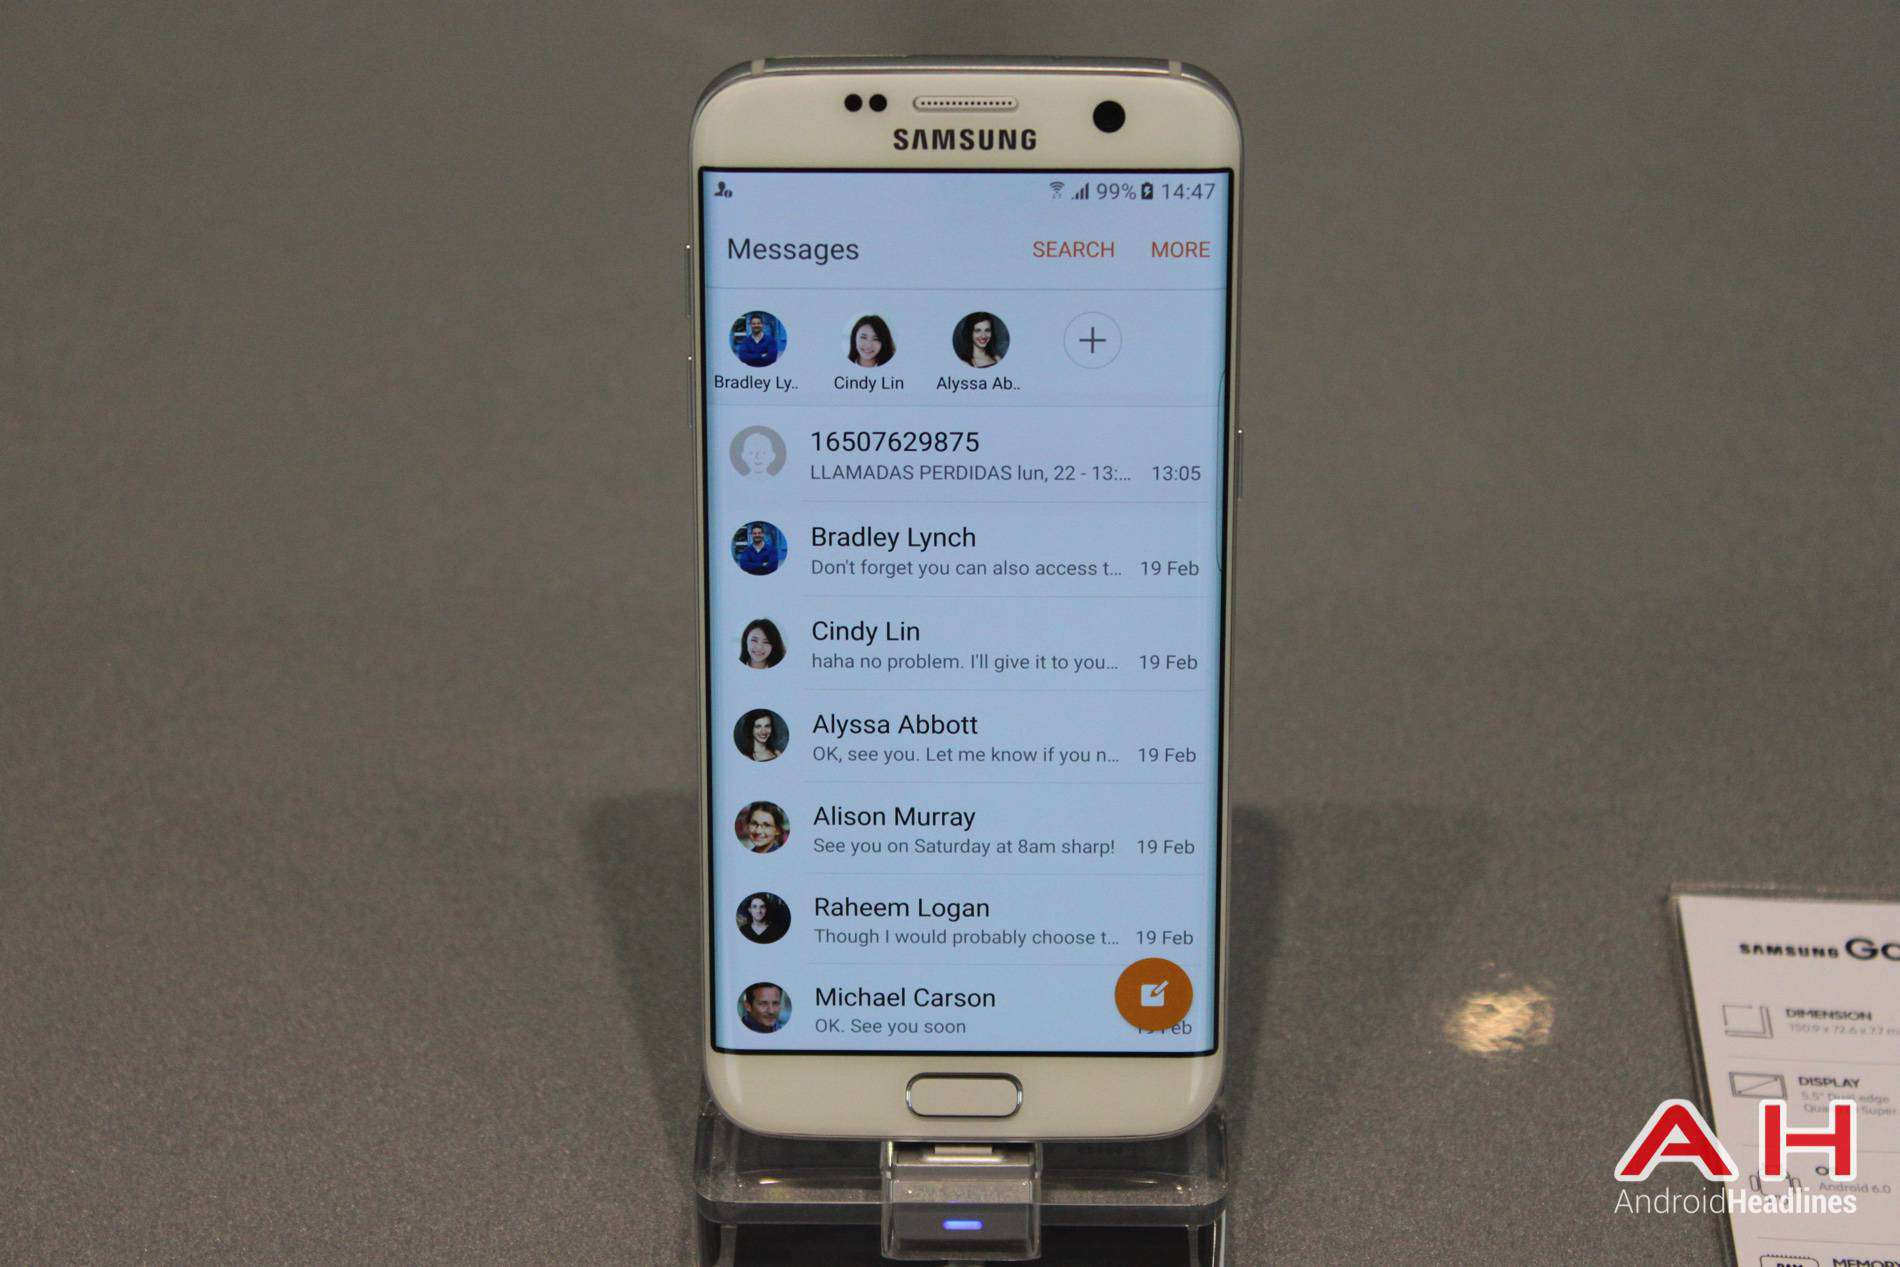 Galaxy S7 Edge MWC Booth AH 19